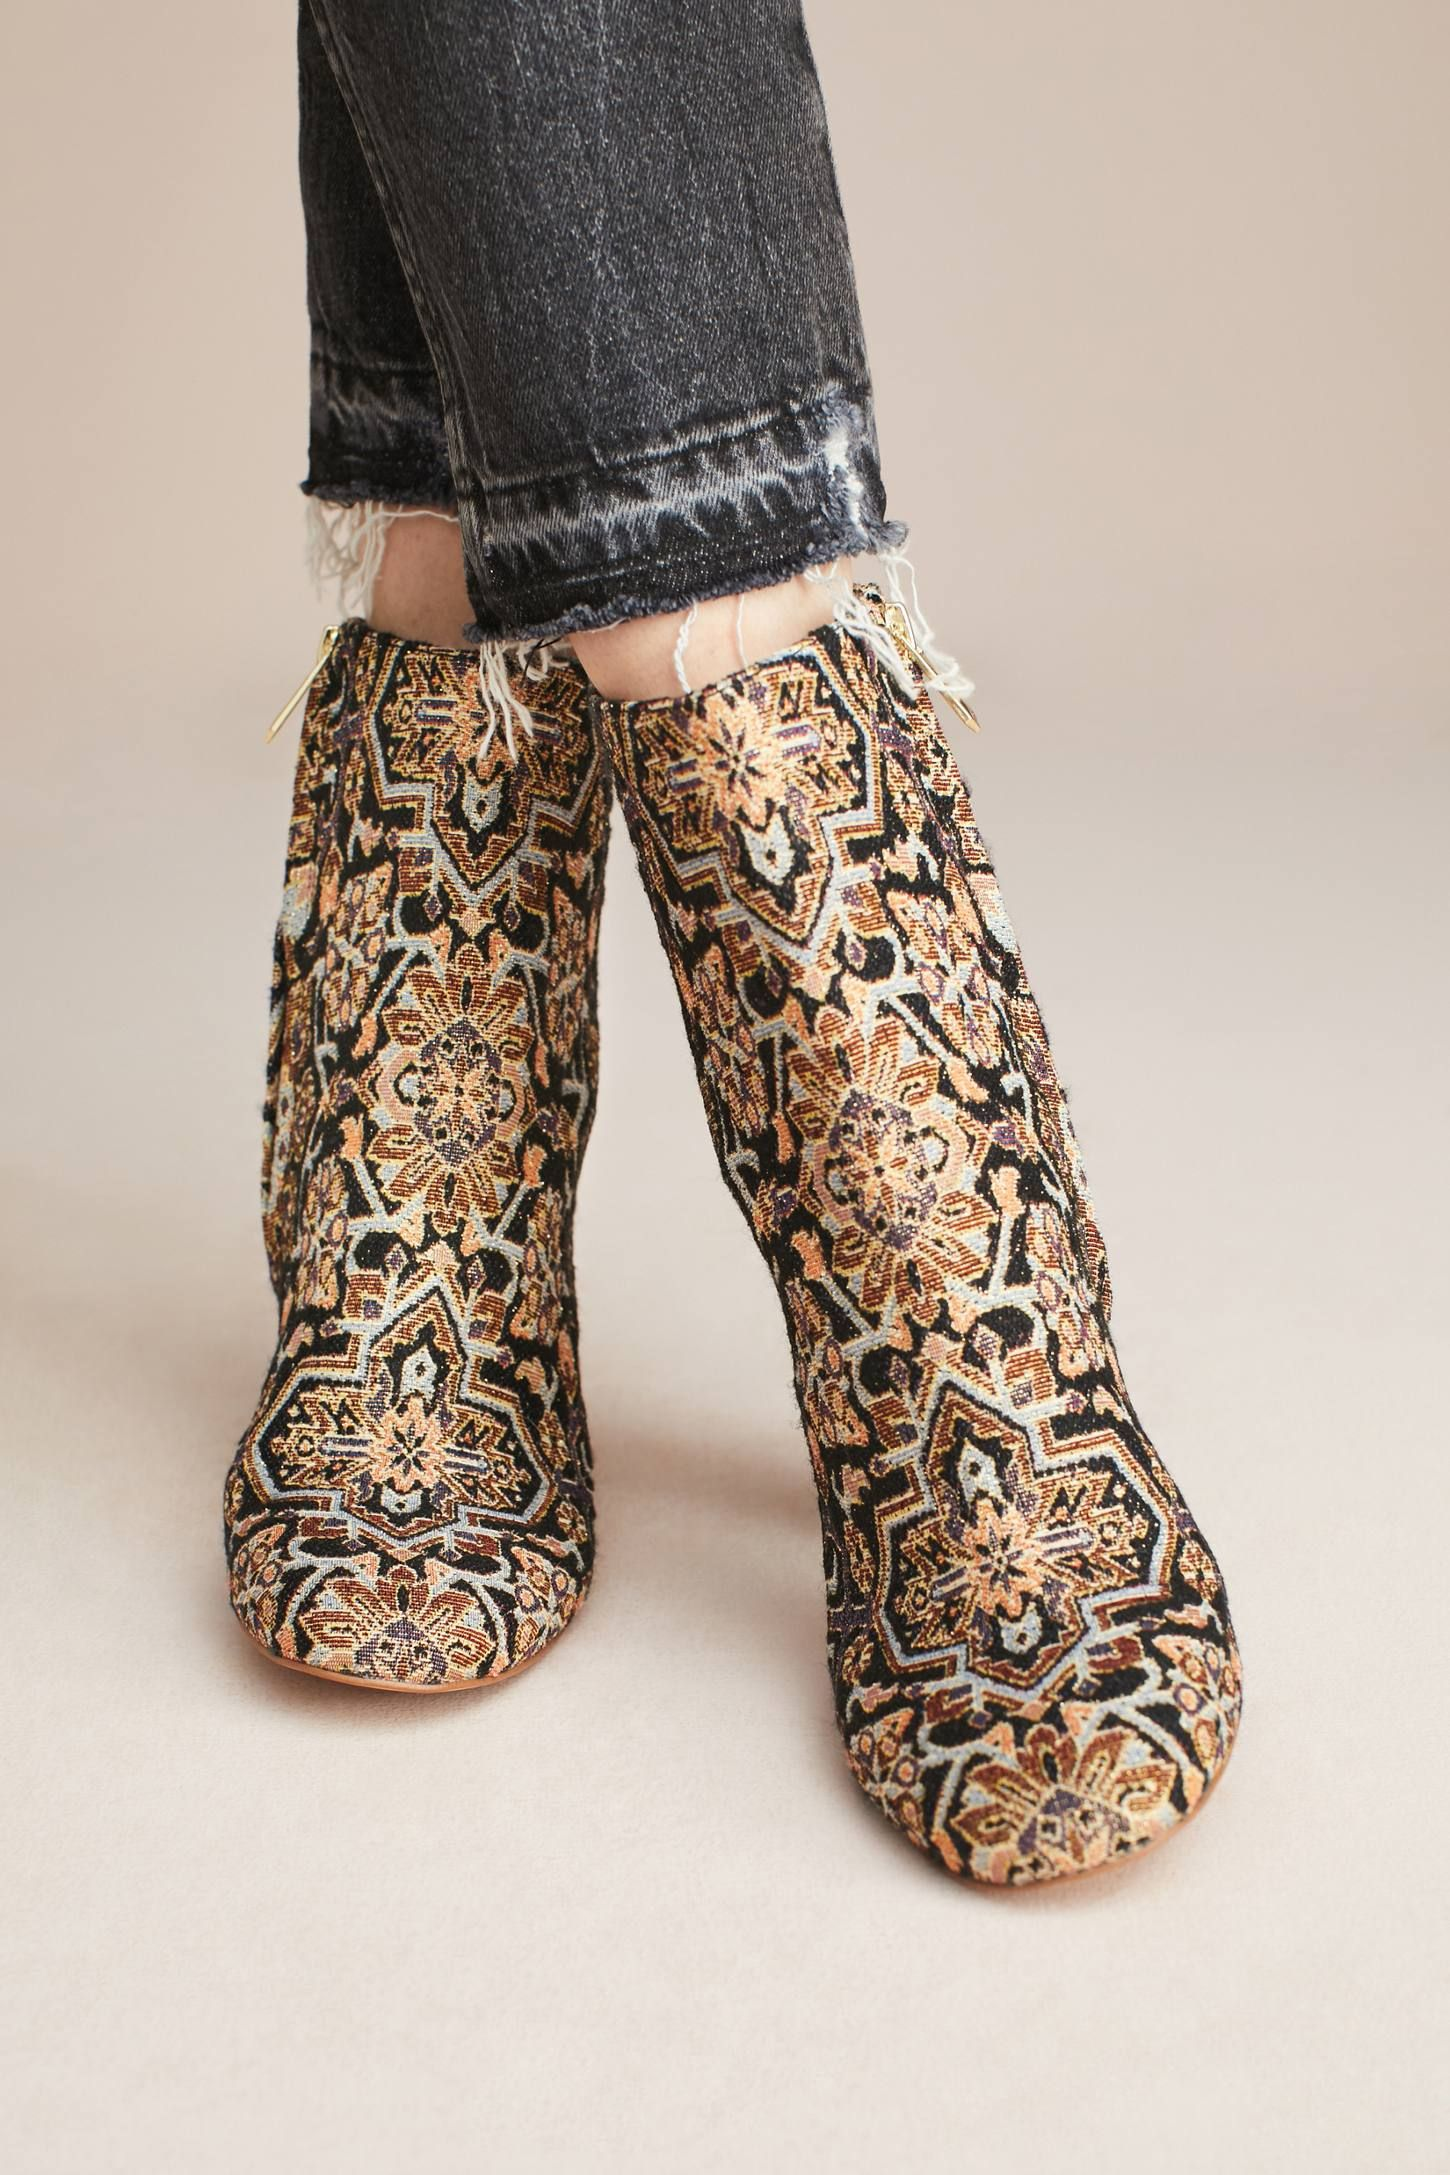 27ba747d4793 Shop the Sam Edelman Corra Tapestry Ankle Boots and more Anthropologie at  Anthropologie today. Read customer reviews